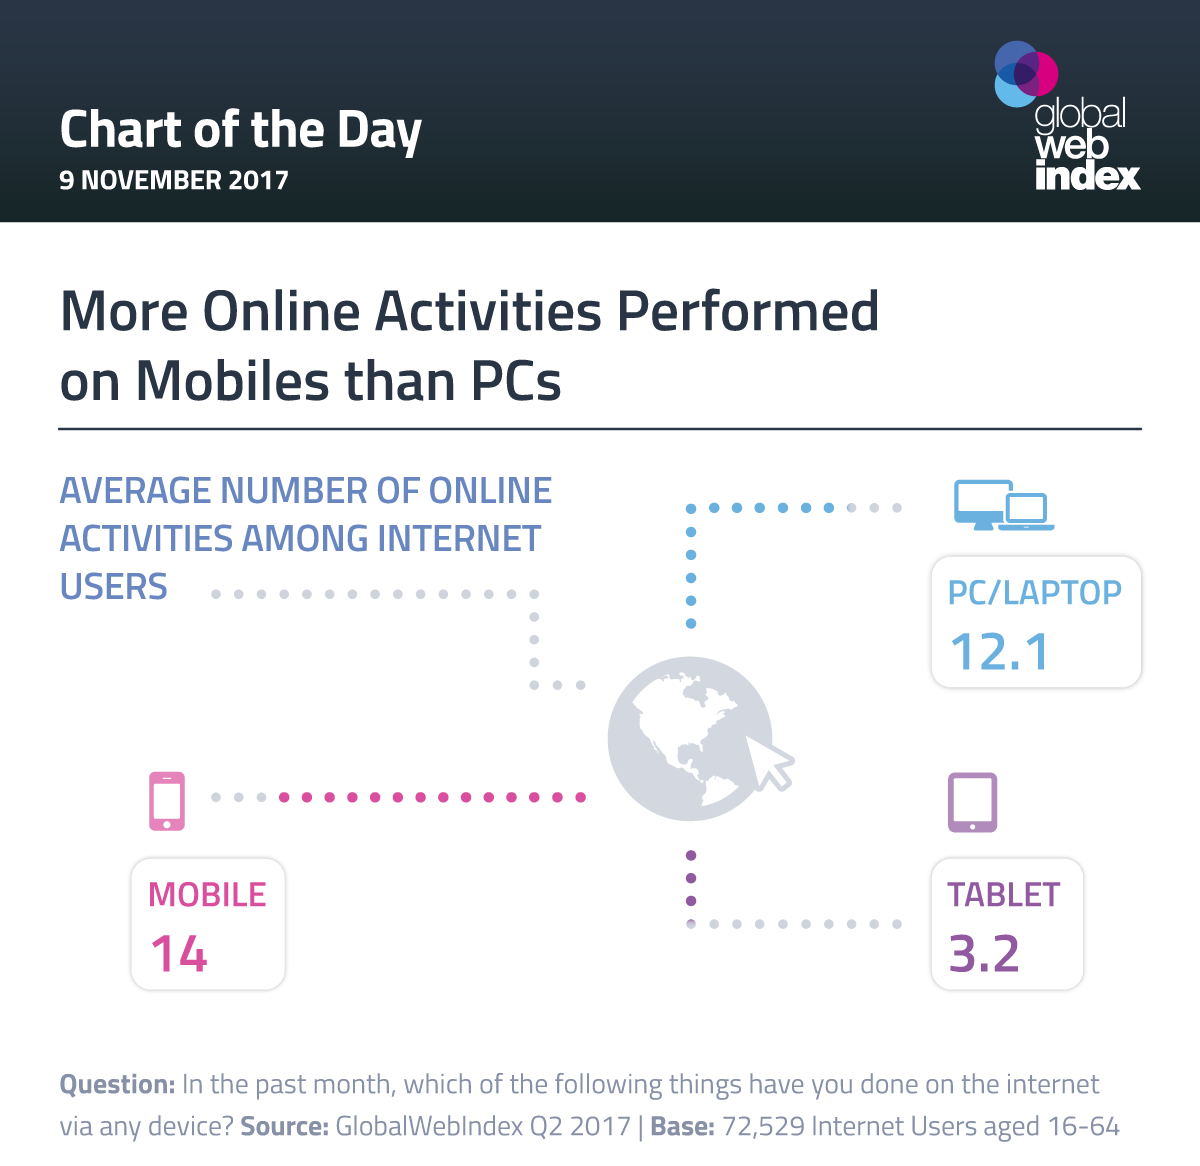 More Online Activities Performed on Mobiles than PCs